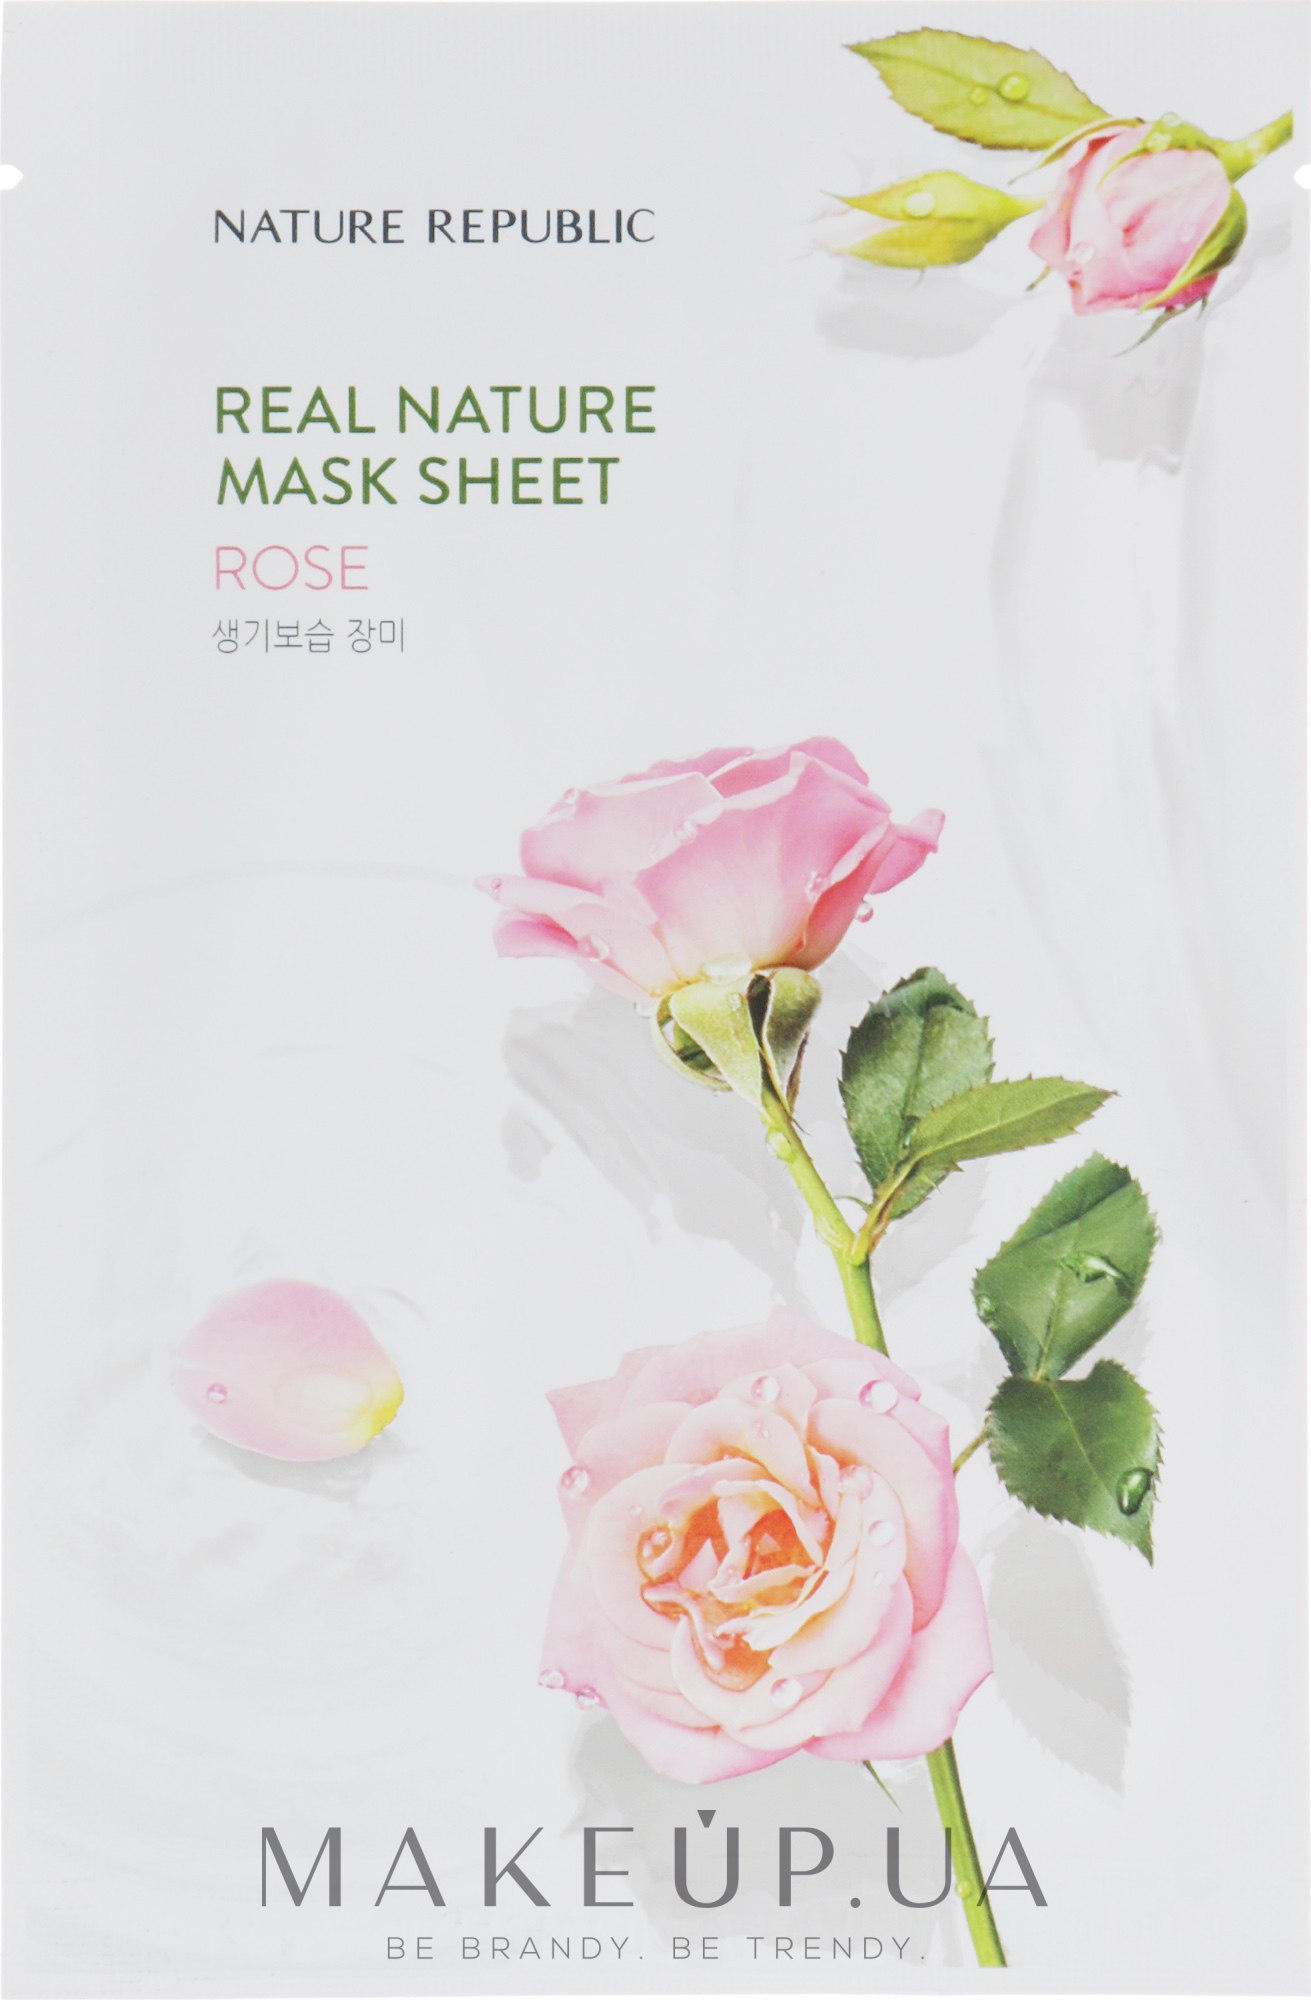 Тканевая маска для лица с экстрактом розы - Nature Republic Real Nature Mask Sheet Rose — фото 23g